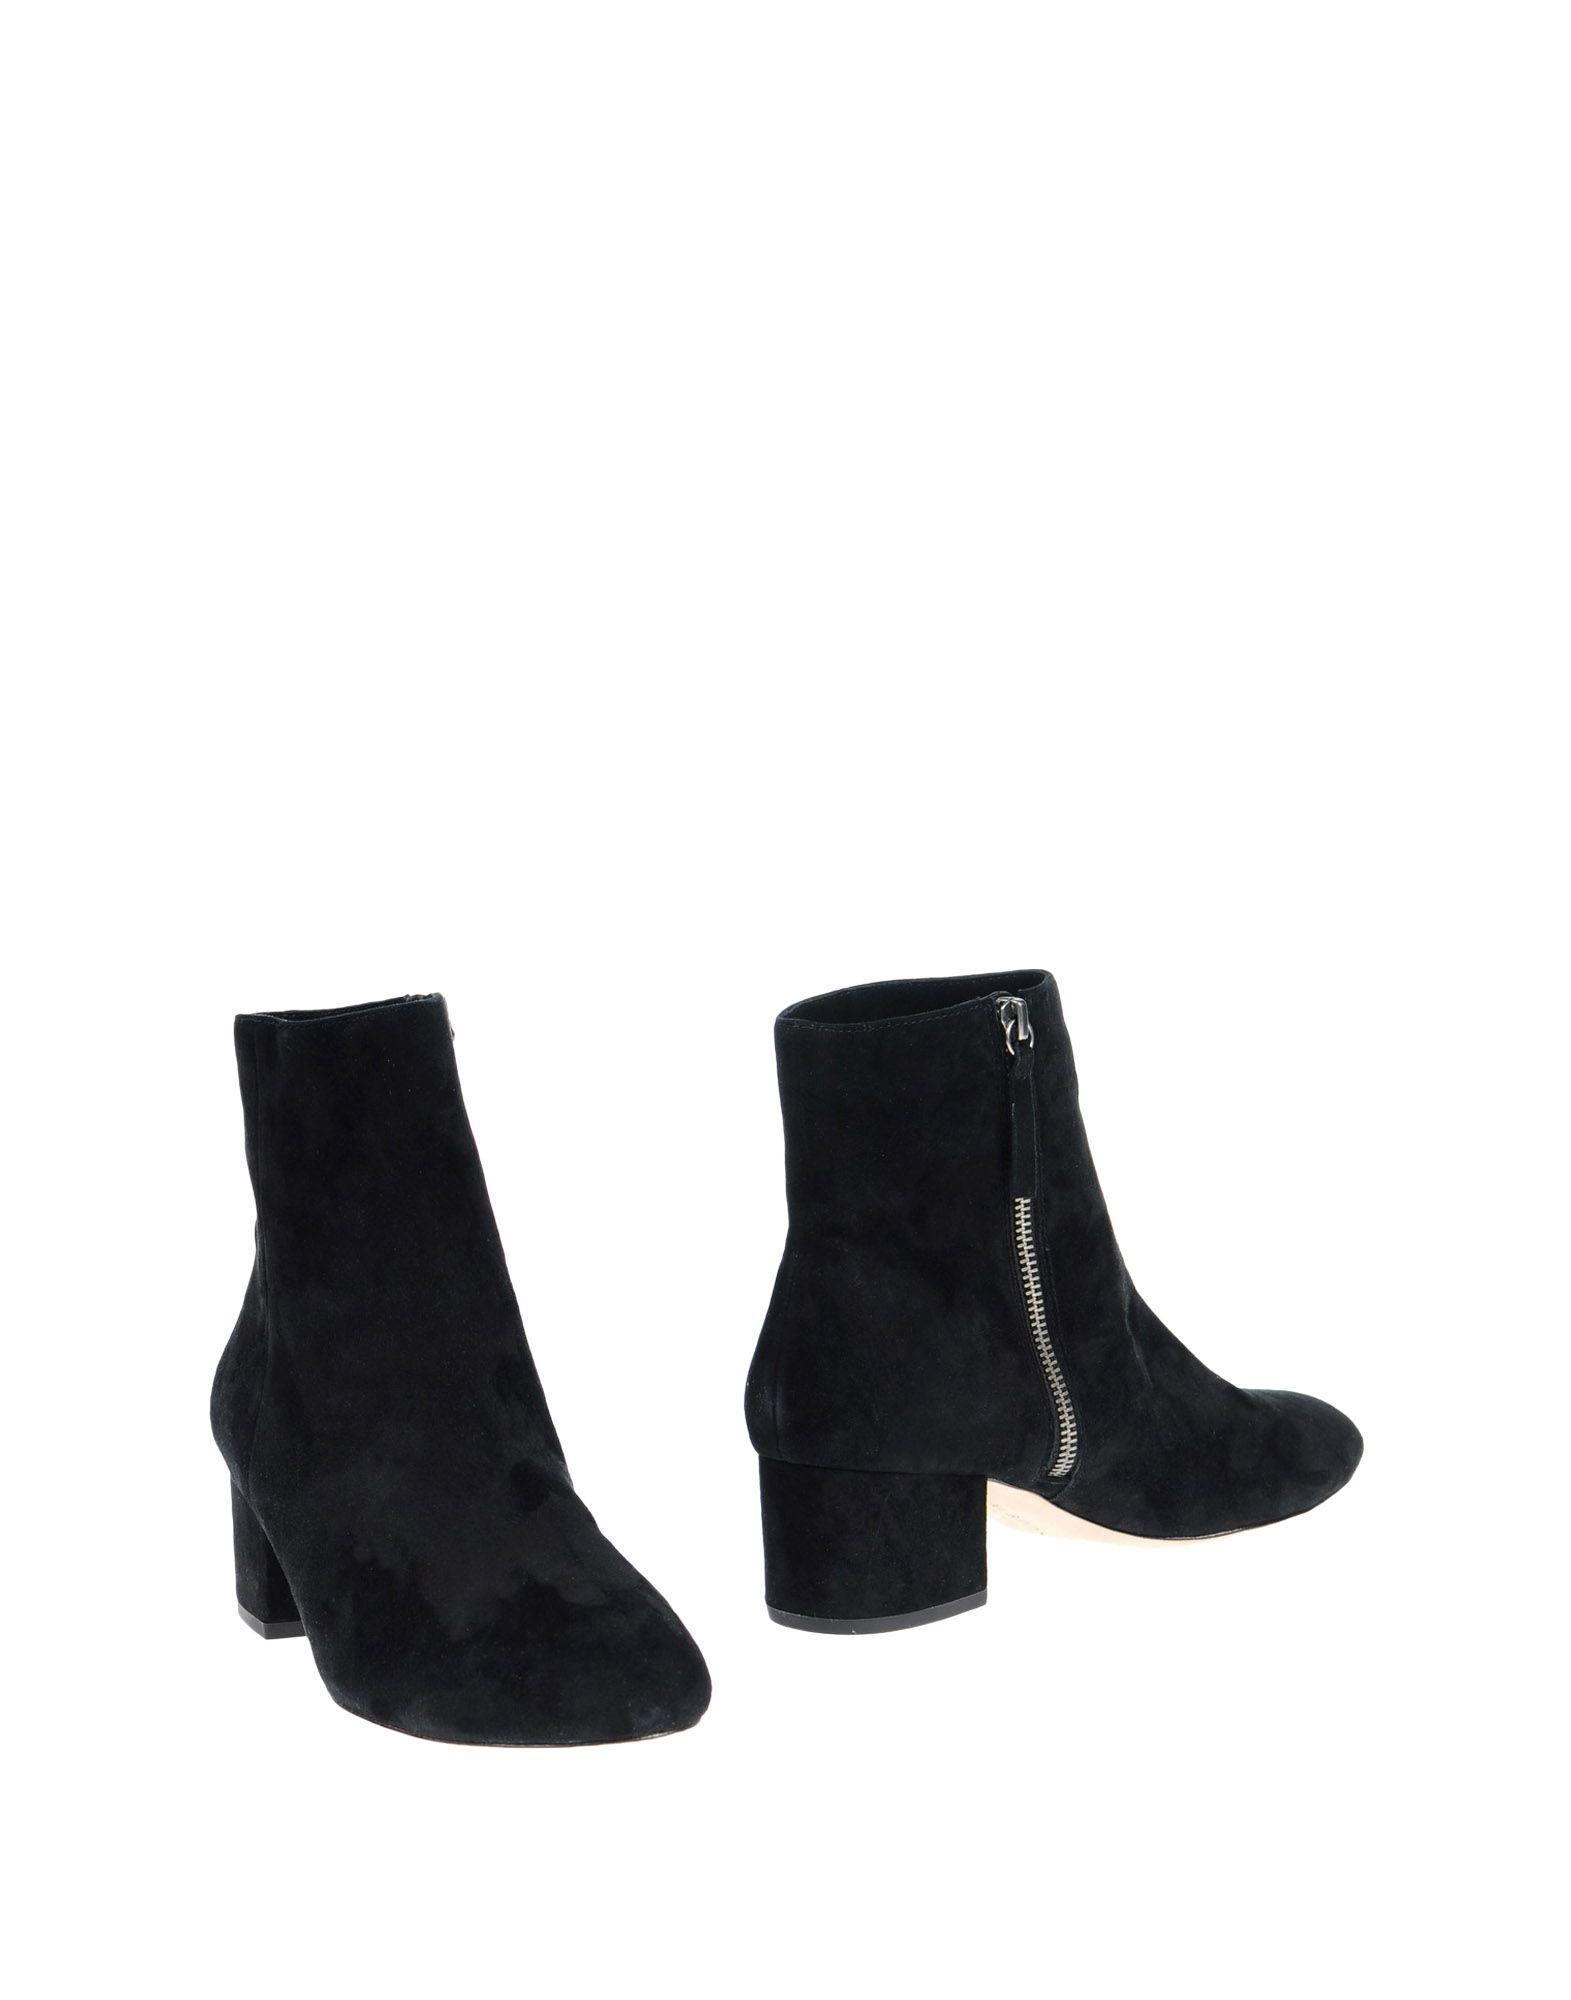 Halston Heritage Ankle Boots In Black